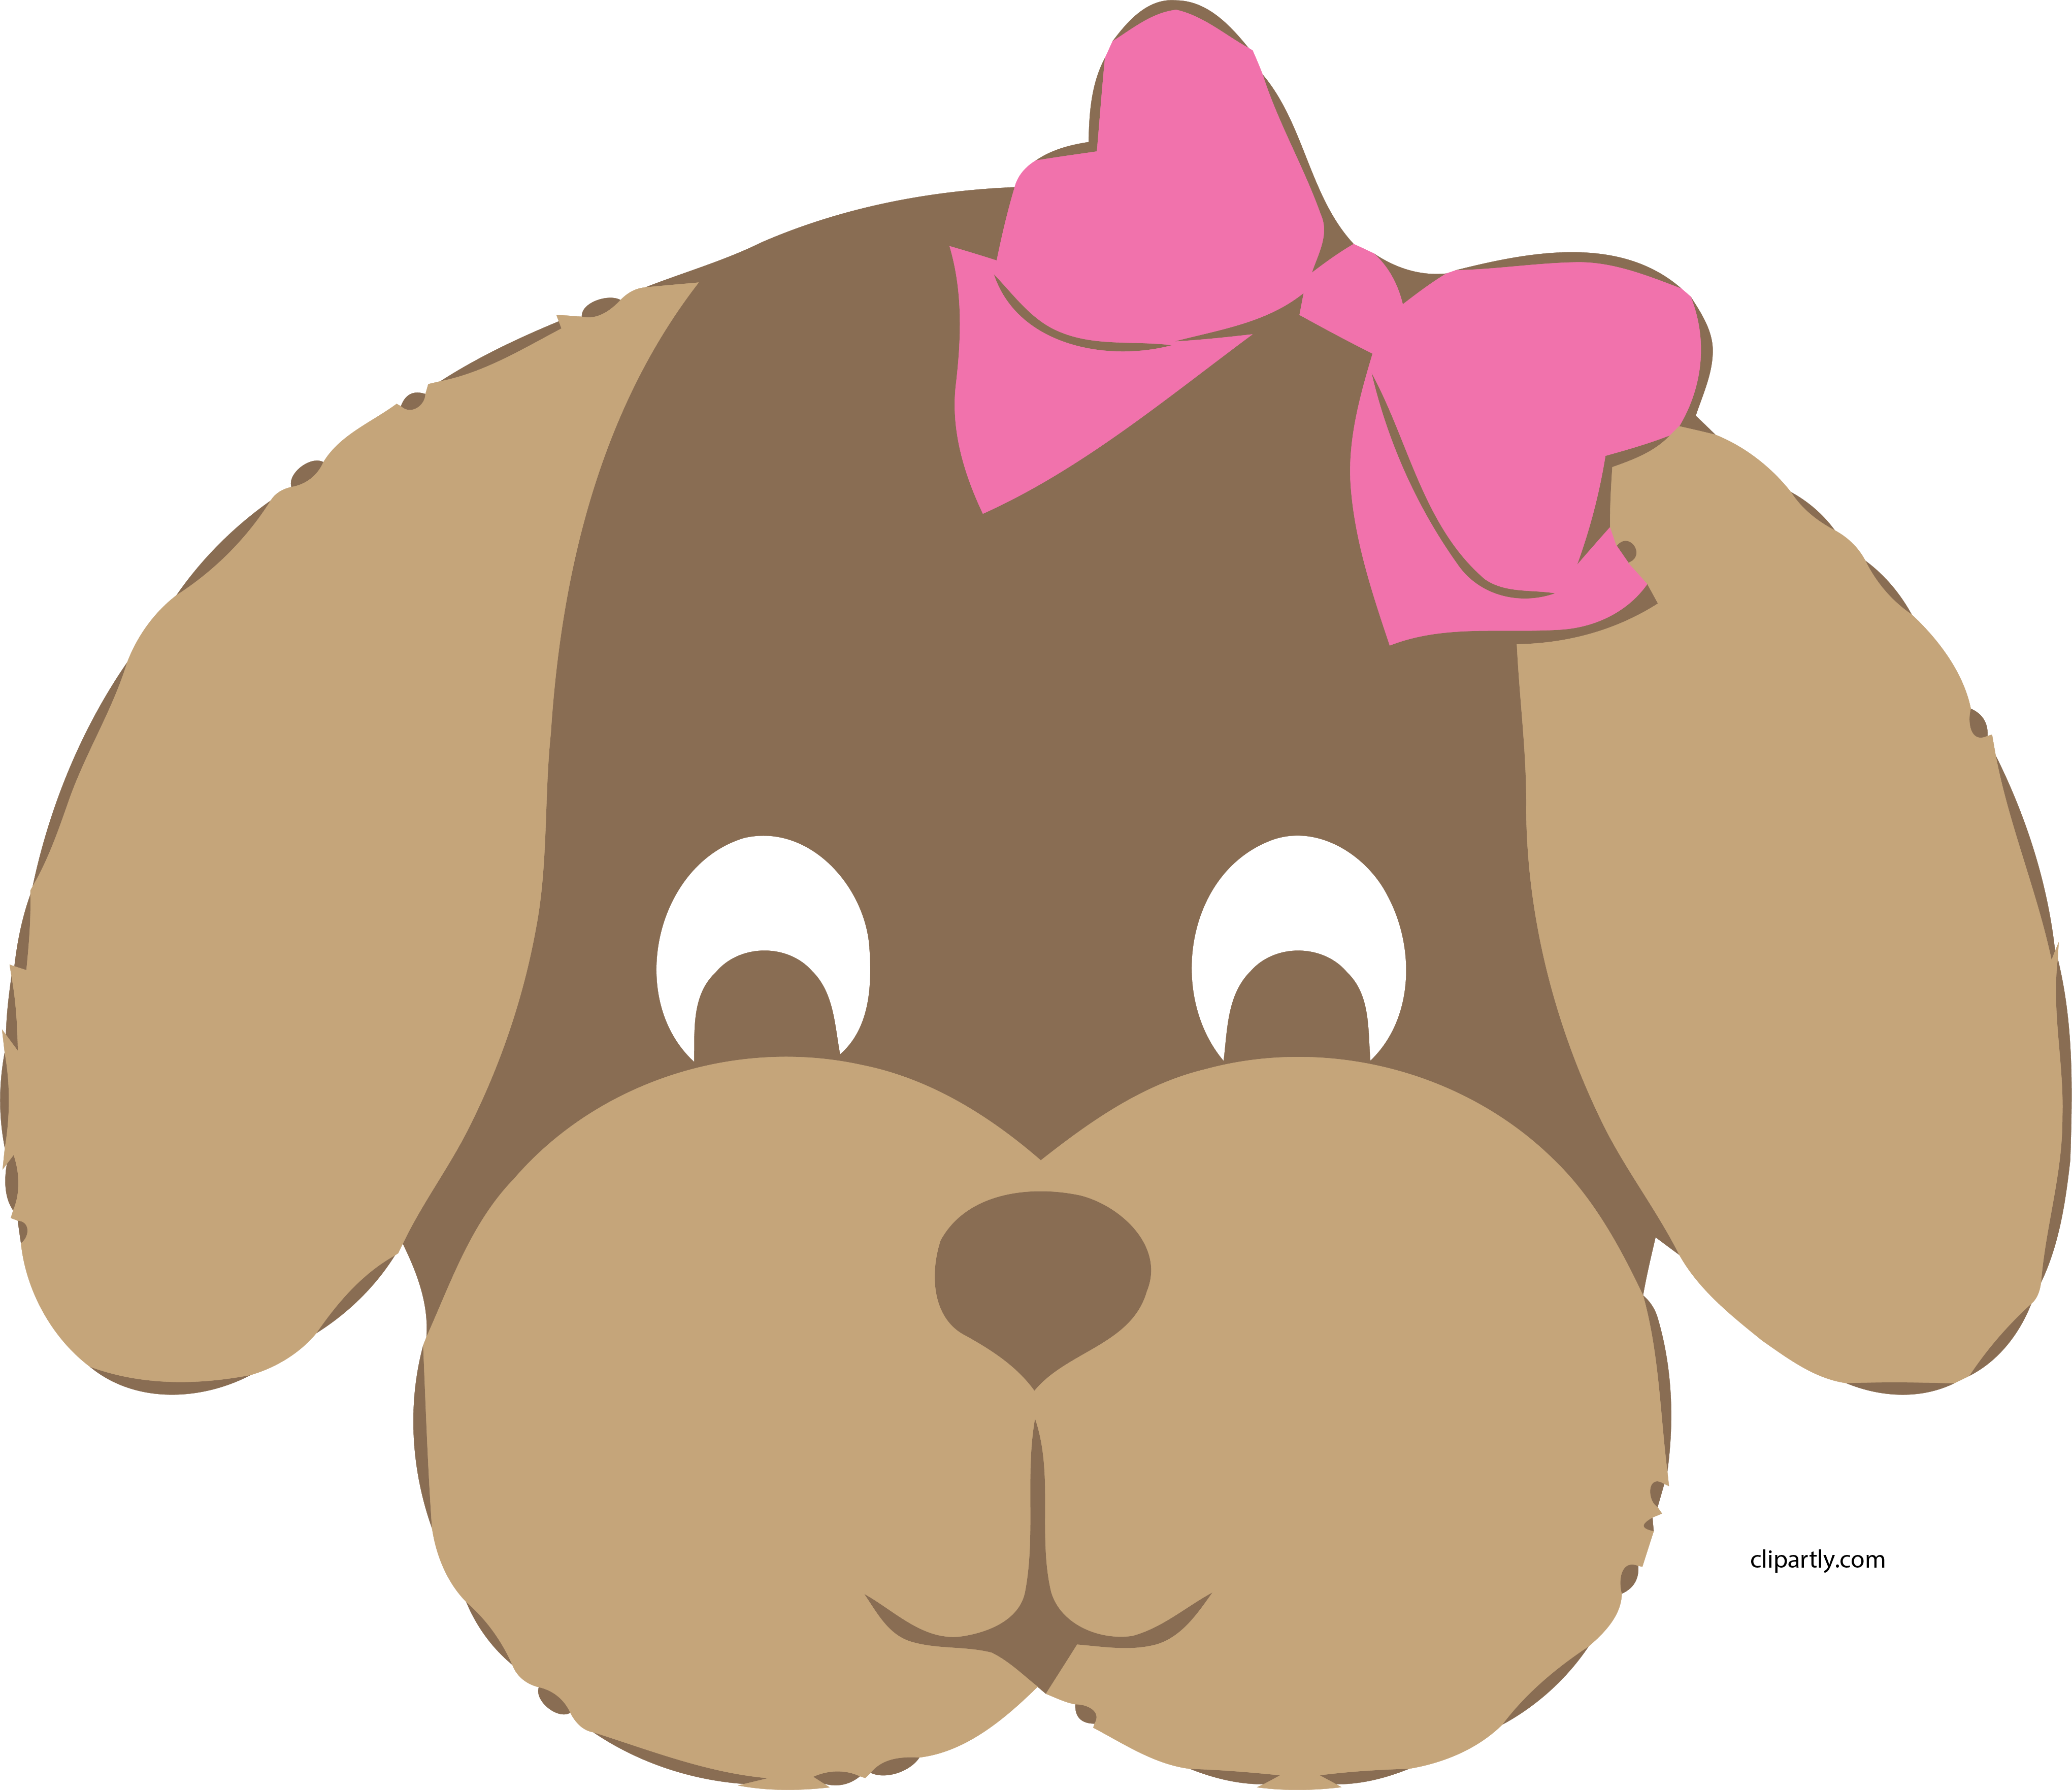 Big Dog Clip Art Girl Dog Face Clipart Cute Sweet Png Cute Dog Face Clipart Is A Free Transparent Png Image Search And Fi Girl And Dog Dog Clip Art